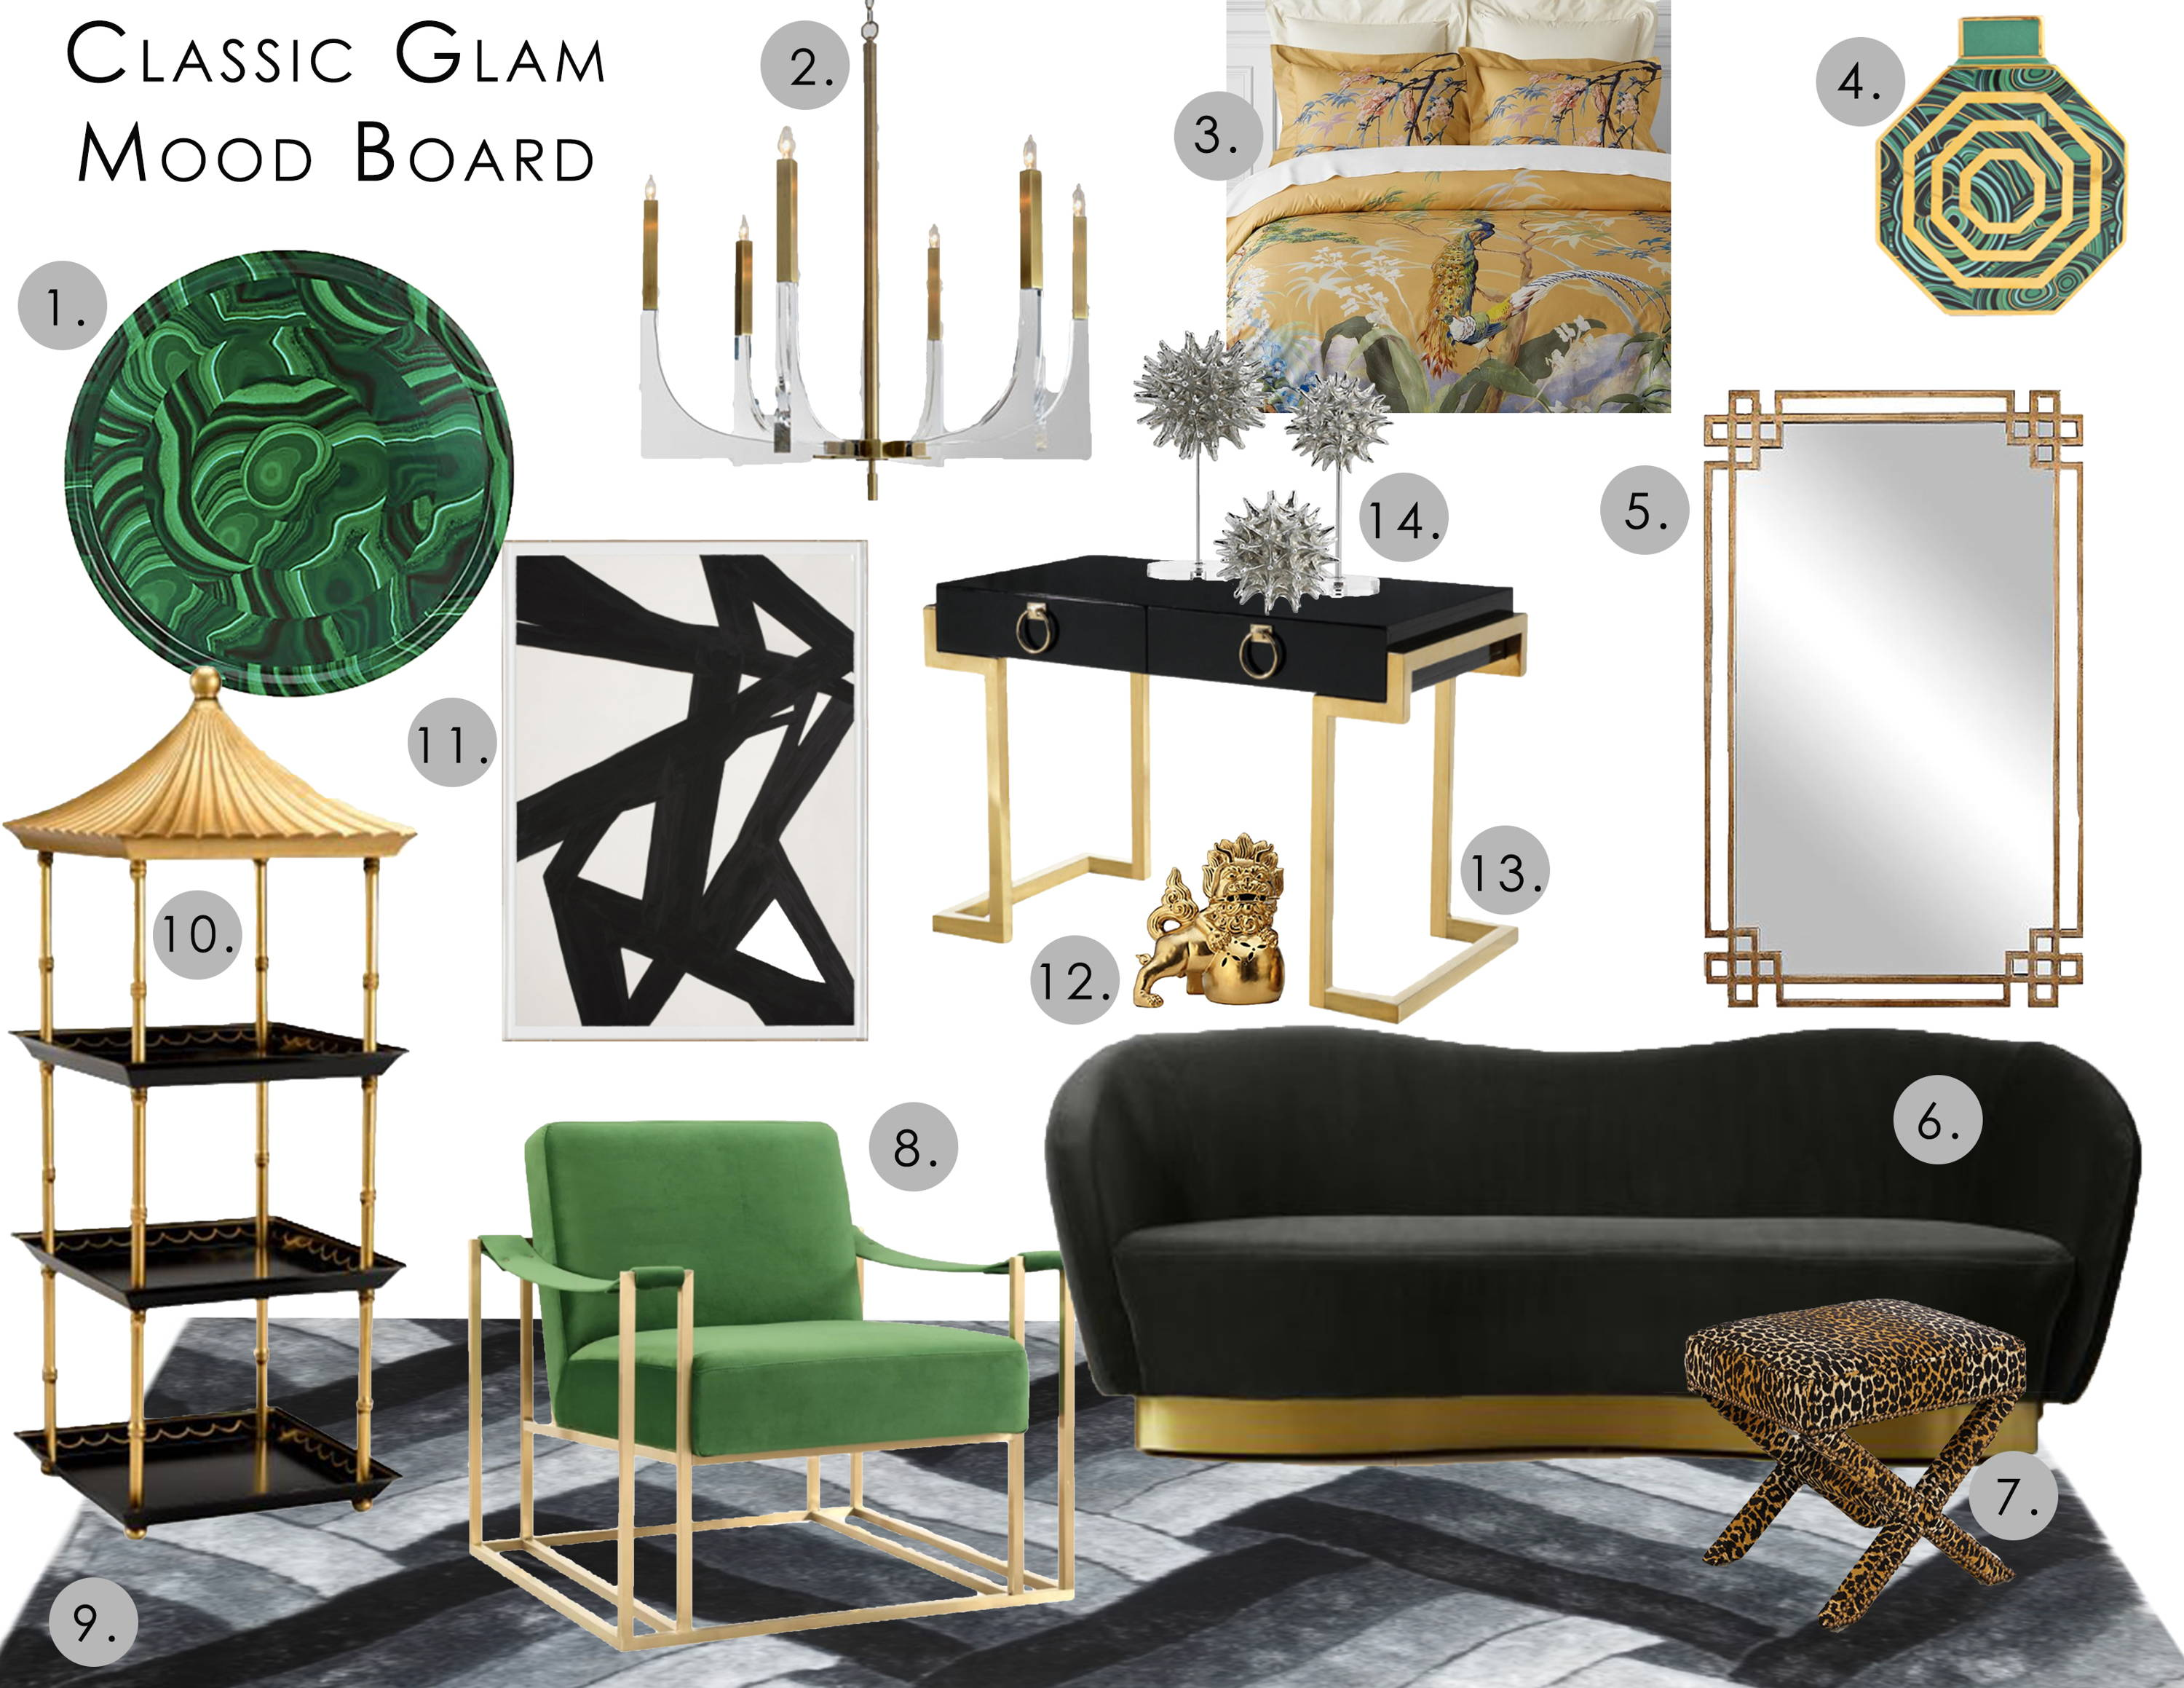 interior design digital mood board featuring furniture and home decor in the classic glam style